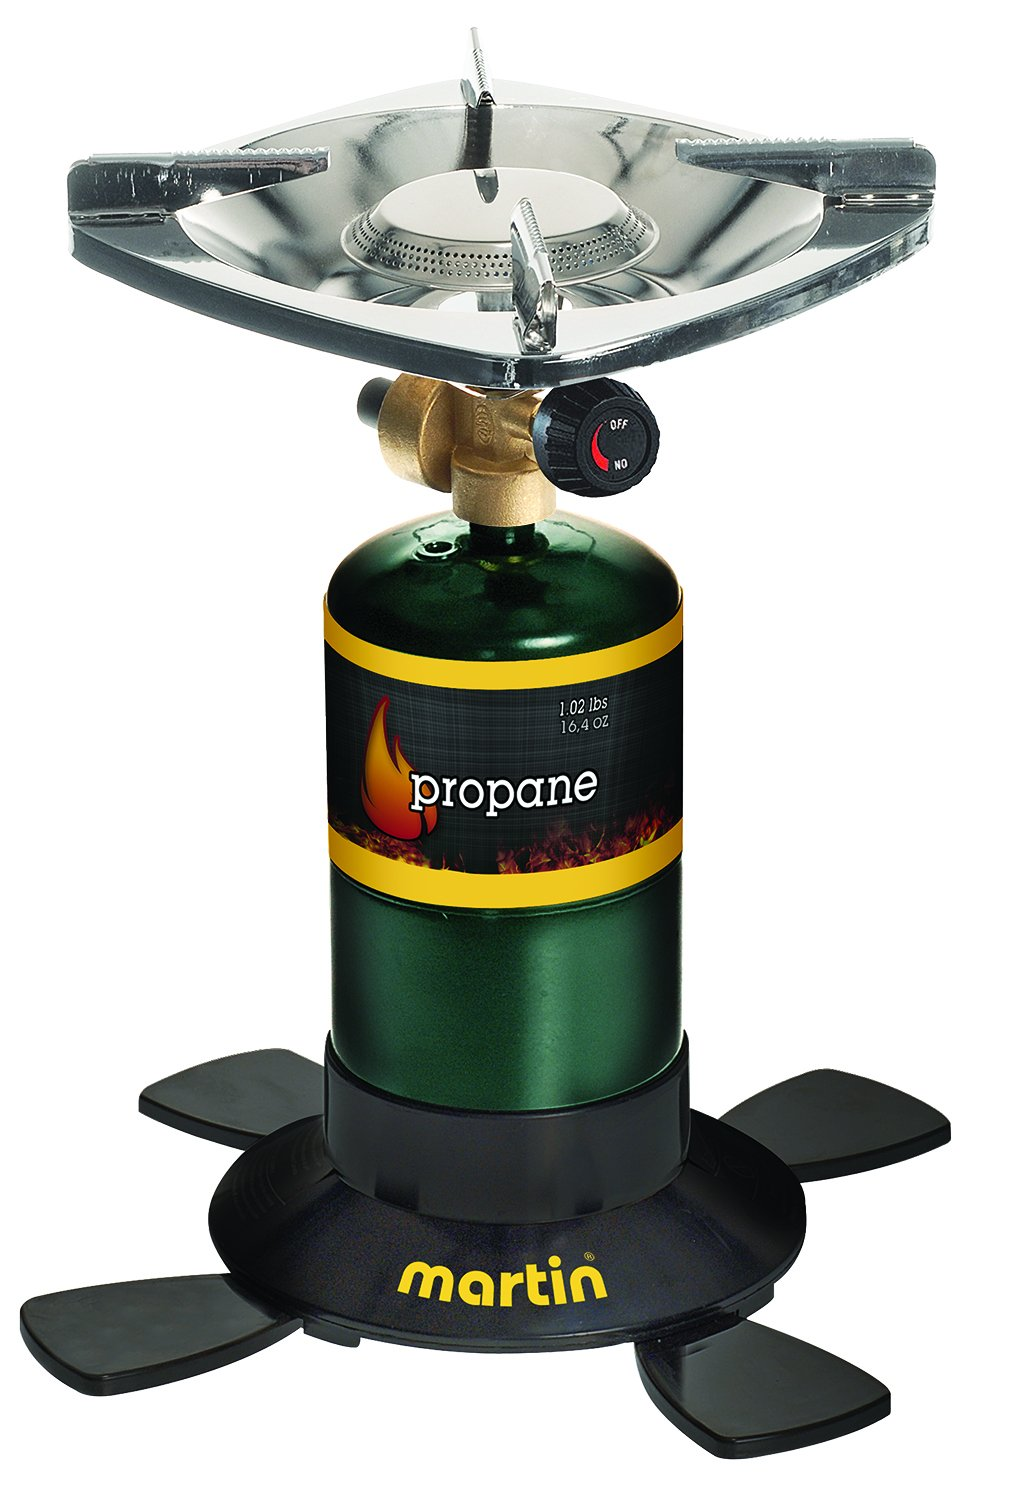 Martin Portable Outdoor Single Burner 10,000 BTU Bottle Top Propane Stove